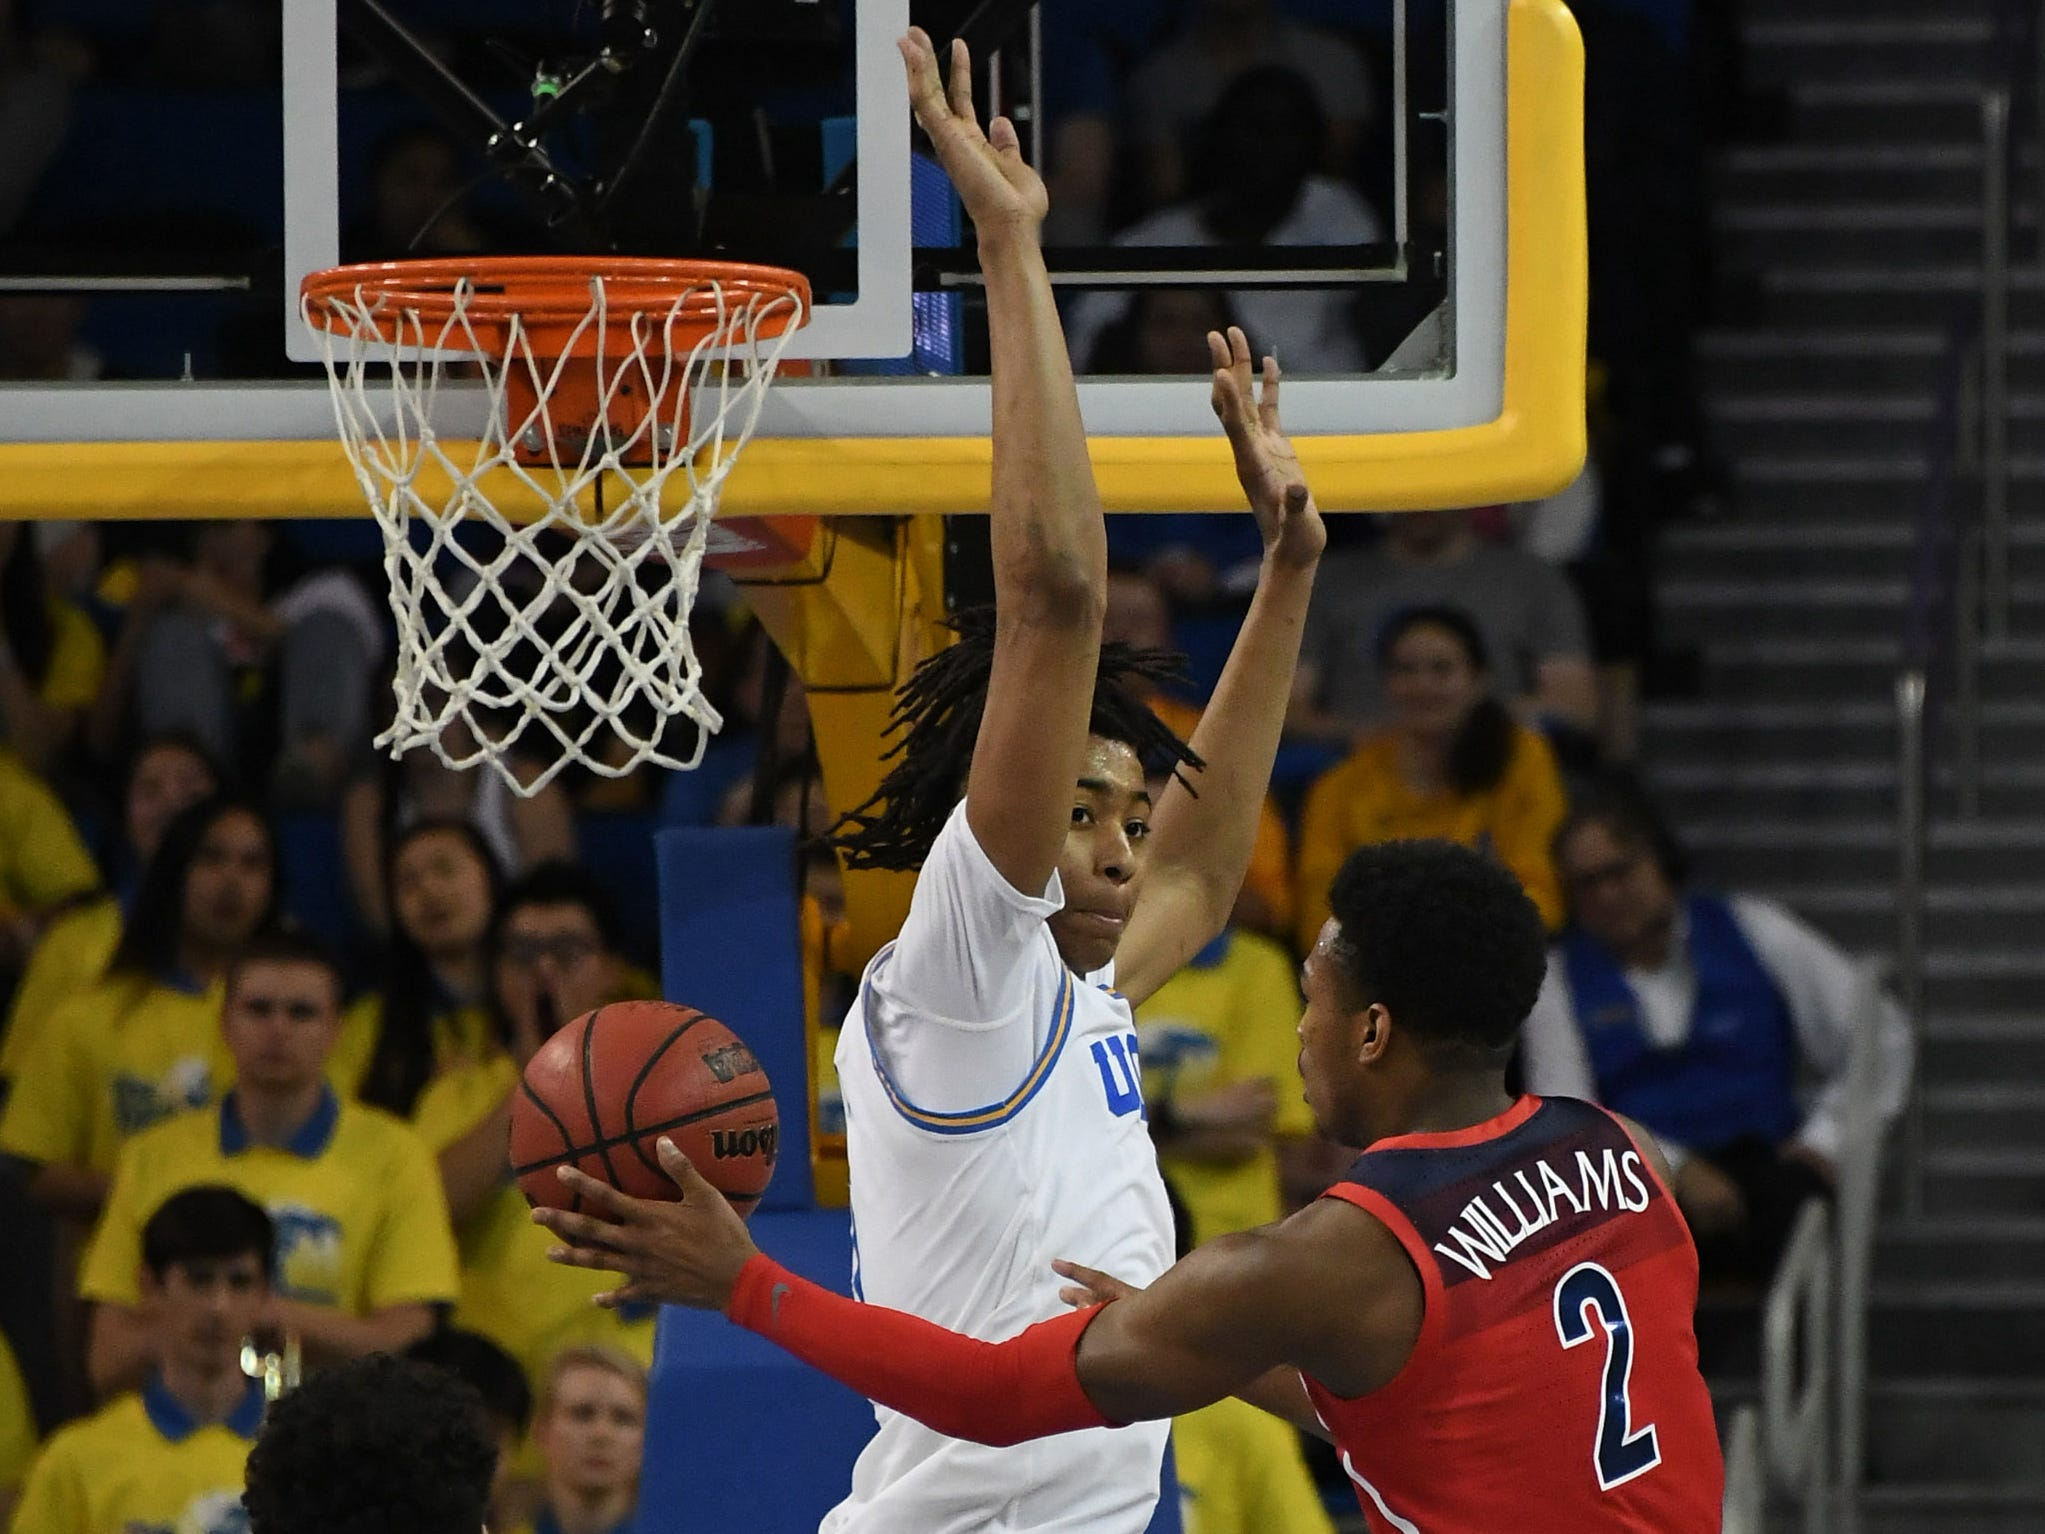 Jan 26, 2019; Los Angeles, CA, USA; Arizona Wildcats guard Brandon Williams (2) shoots against UCLA Bruins center Moses Brown (1) in the second half at Pauley Pavilion.